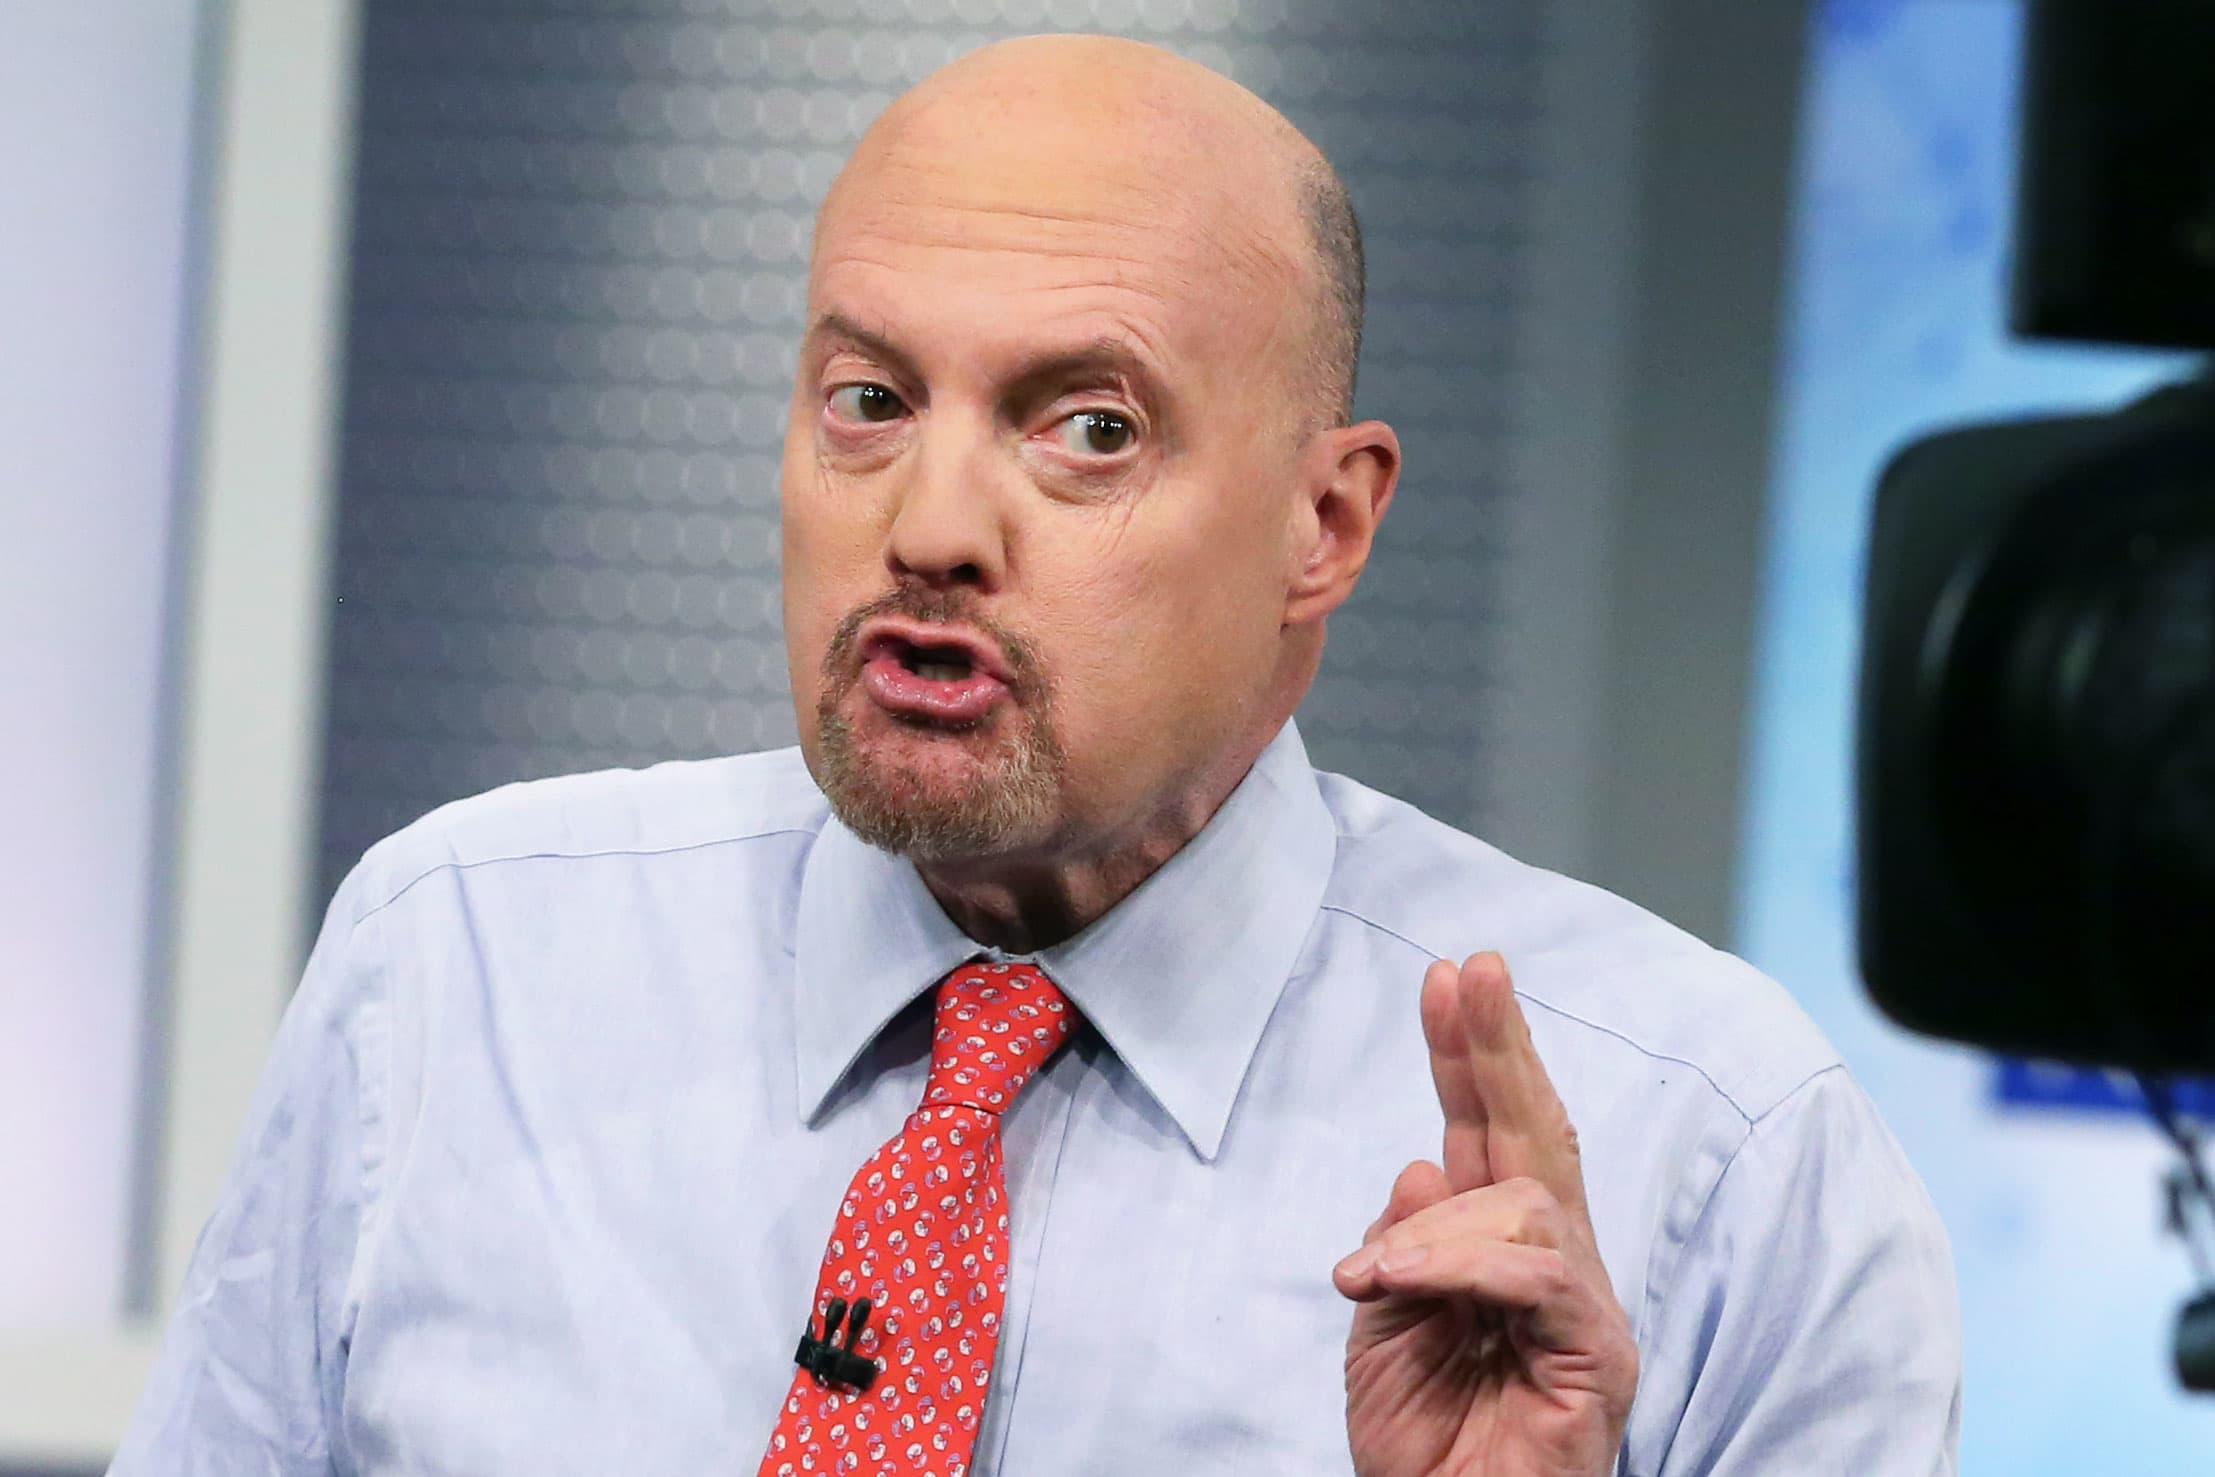 Jim Cramer says uncertainty about Covid is helping stocks right now